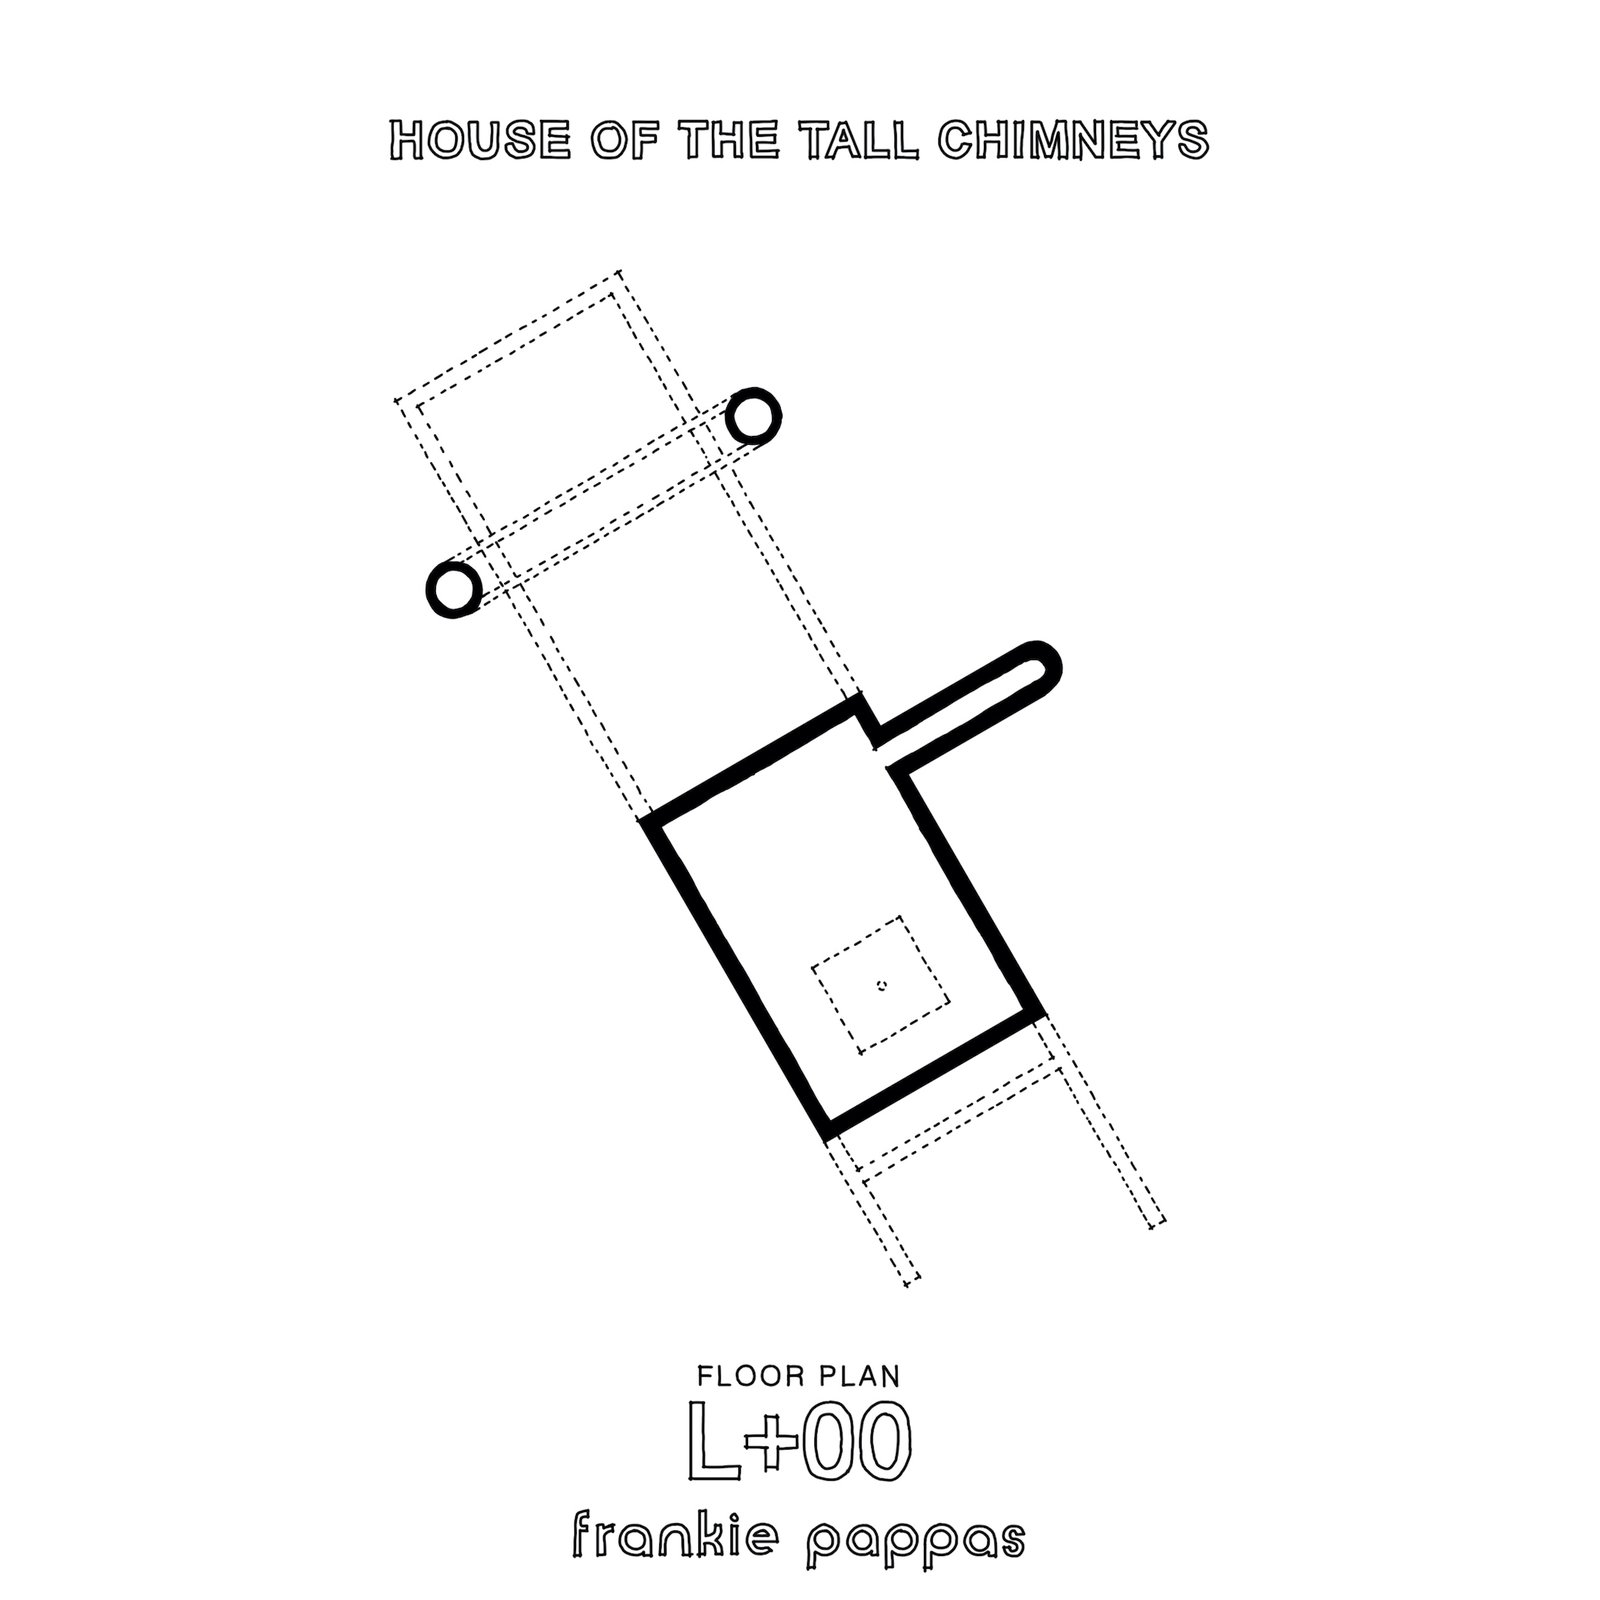 Ground-level floor plan of House of the Tall Chimneys by Frankie Pappas.